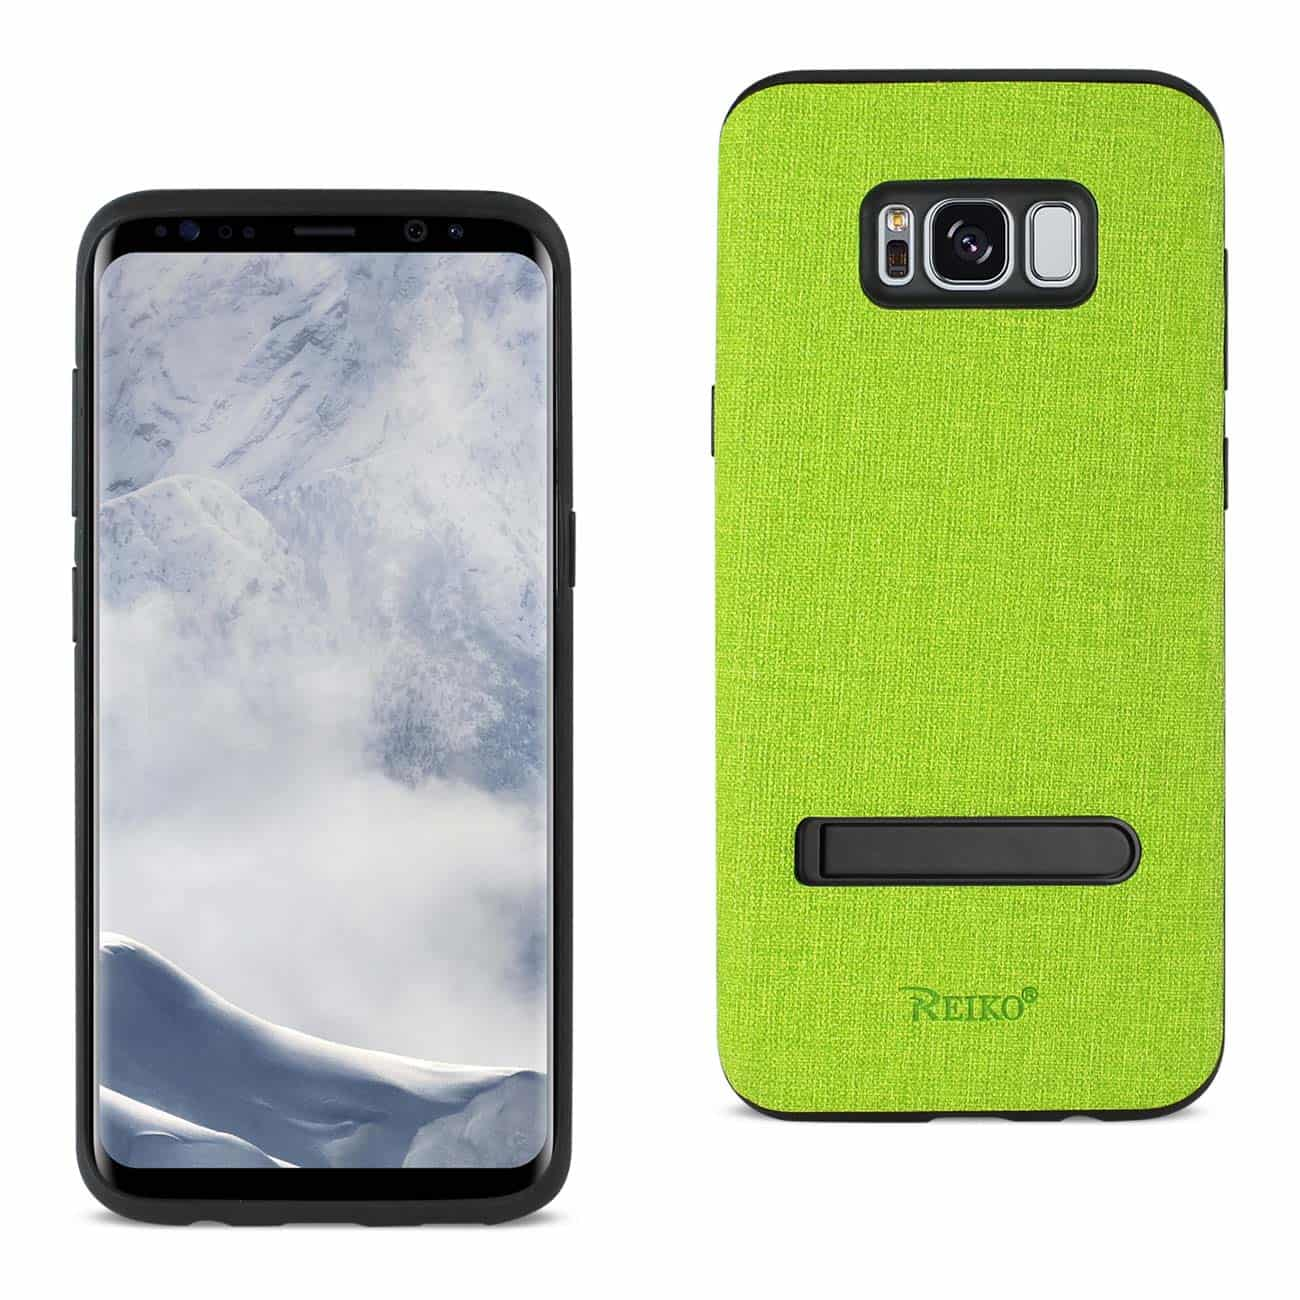 SAMSUNG GALAXY S8 EDGE/ S8 PLUS DENIM TEXTURE TPU PROTECTOR COVER IN GREEN